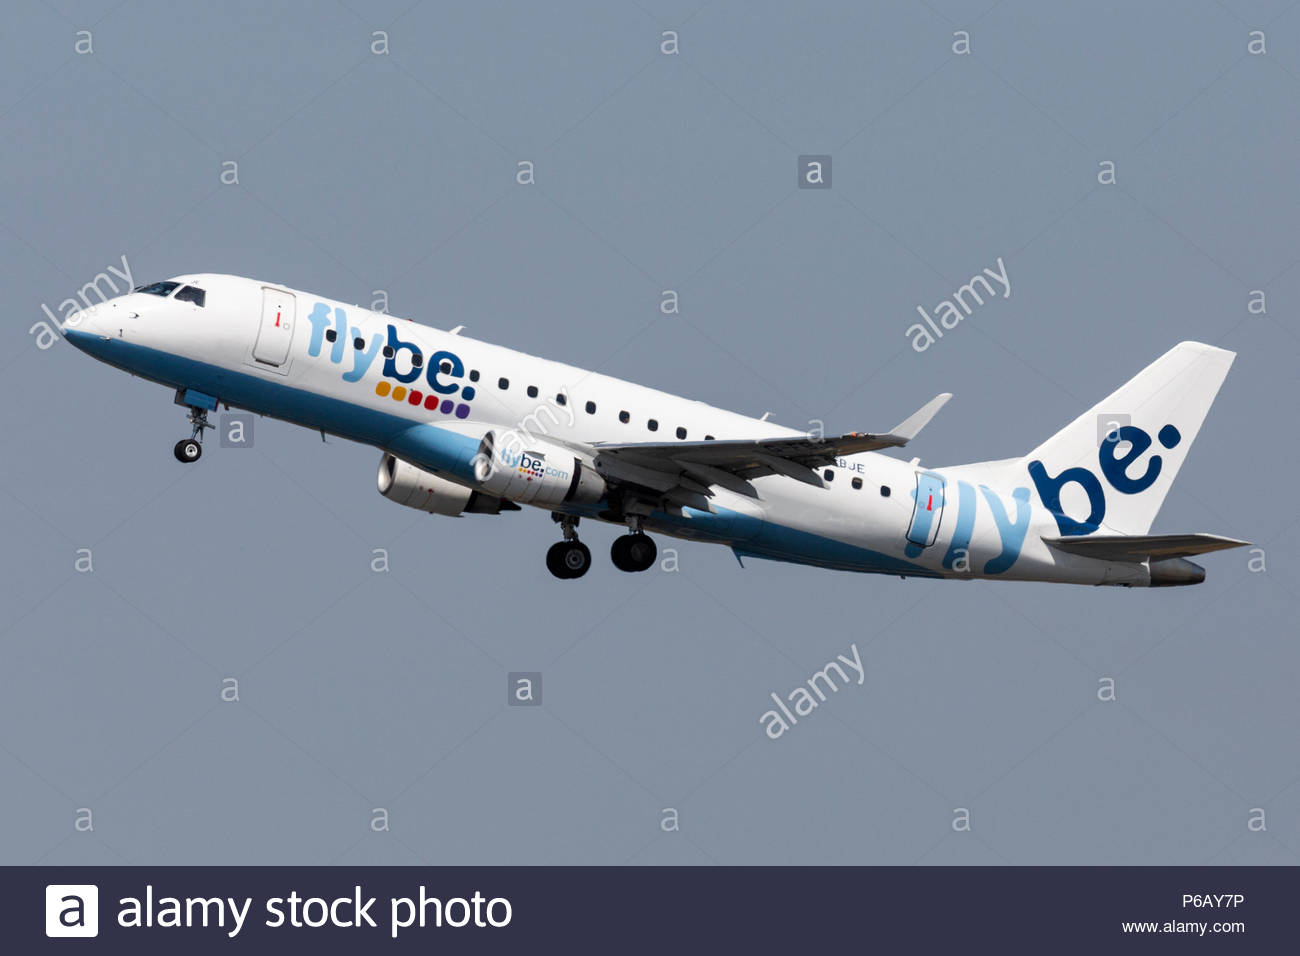 A Flybe Embraer EMB-175 airliner, G-FBJE, taking off from Manchester Airport in England. - Stock Image